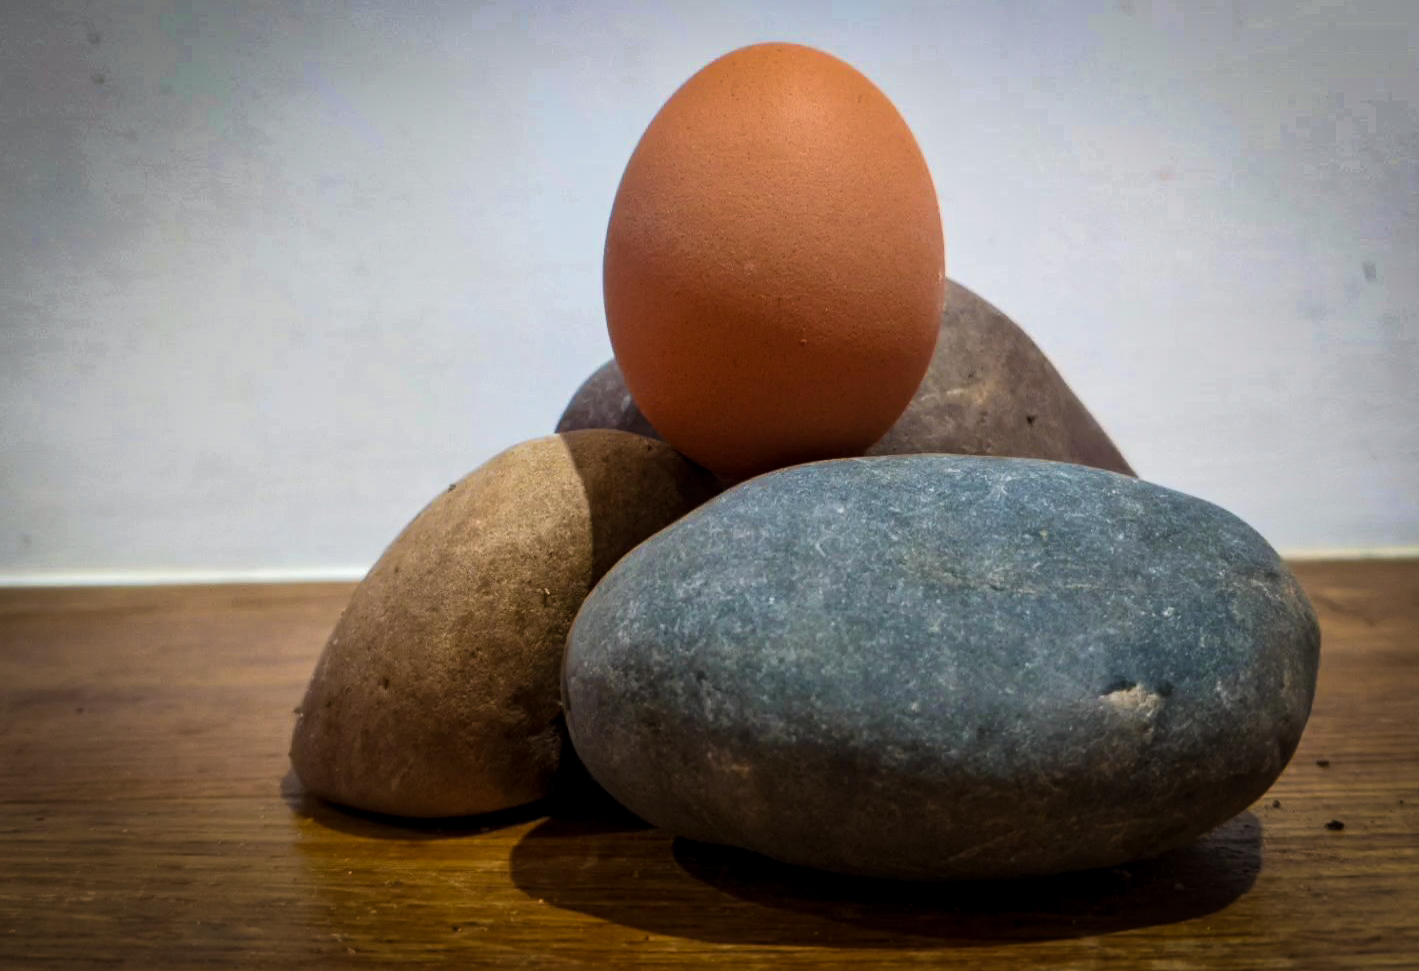 Image of an egg on top of three different coloured stones